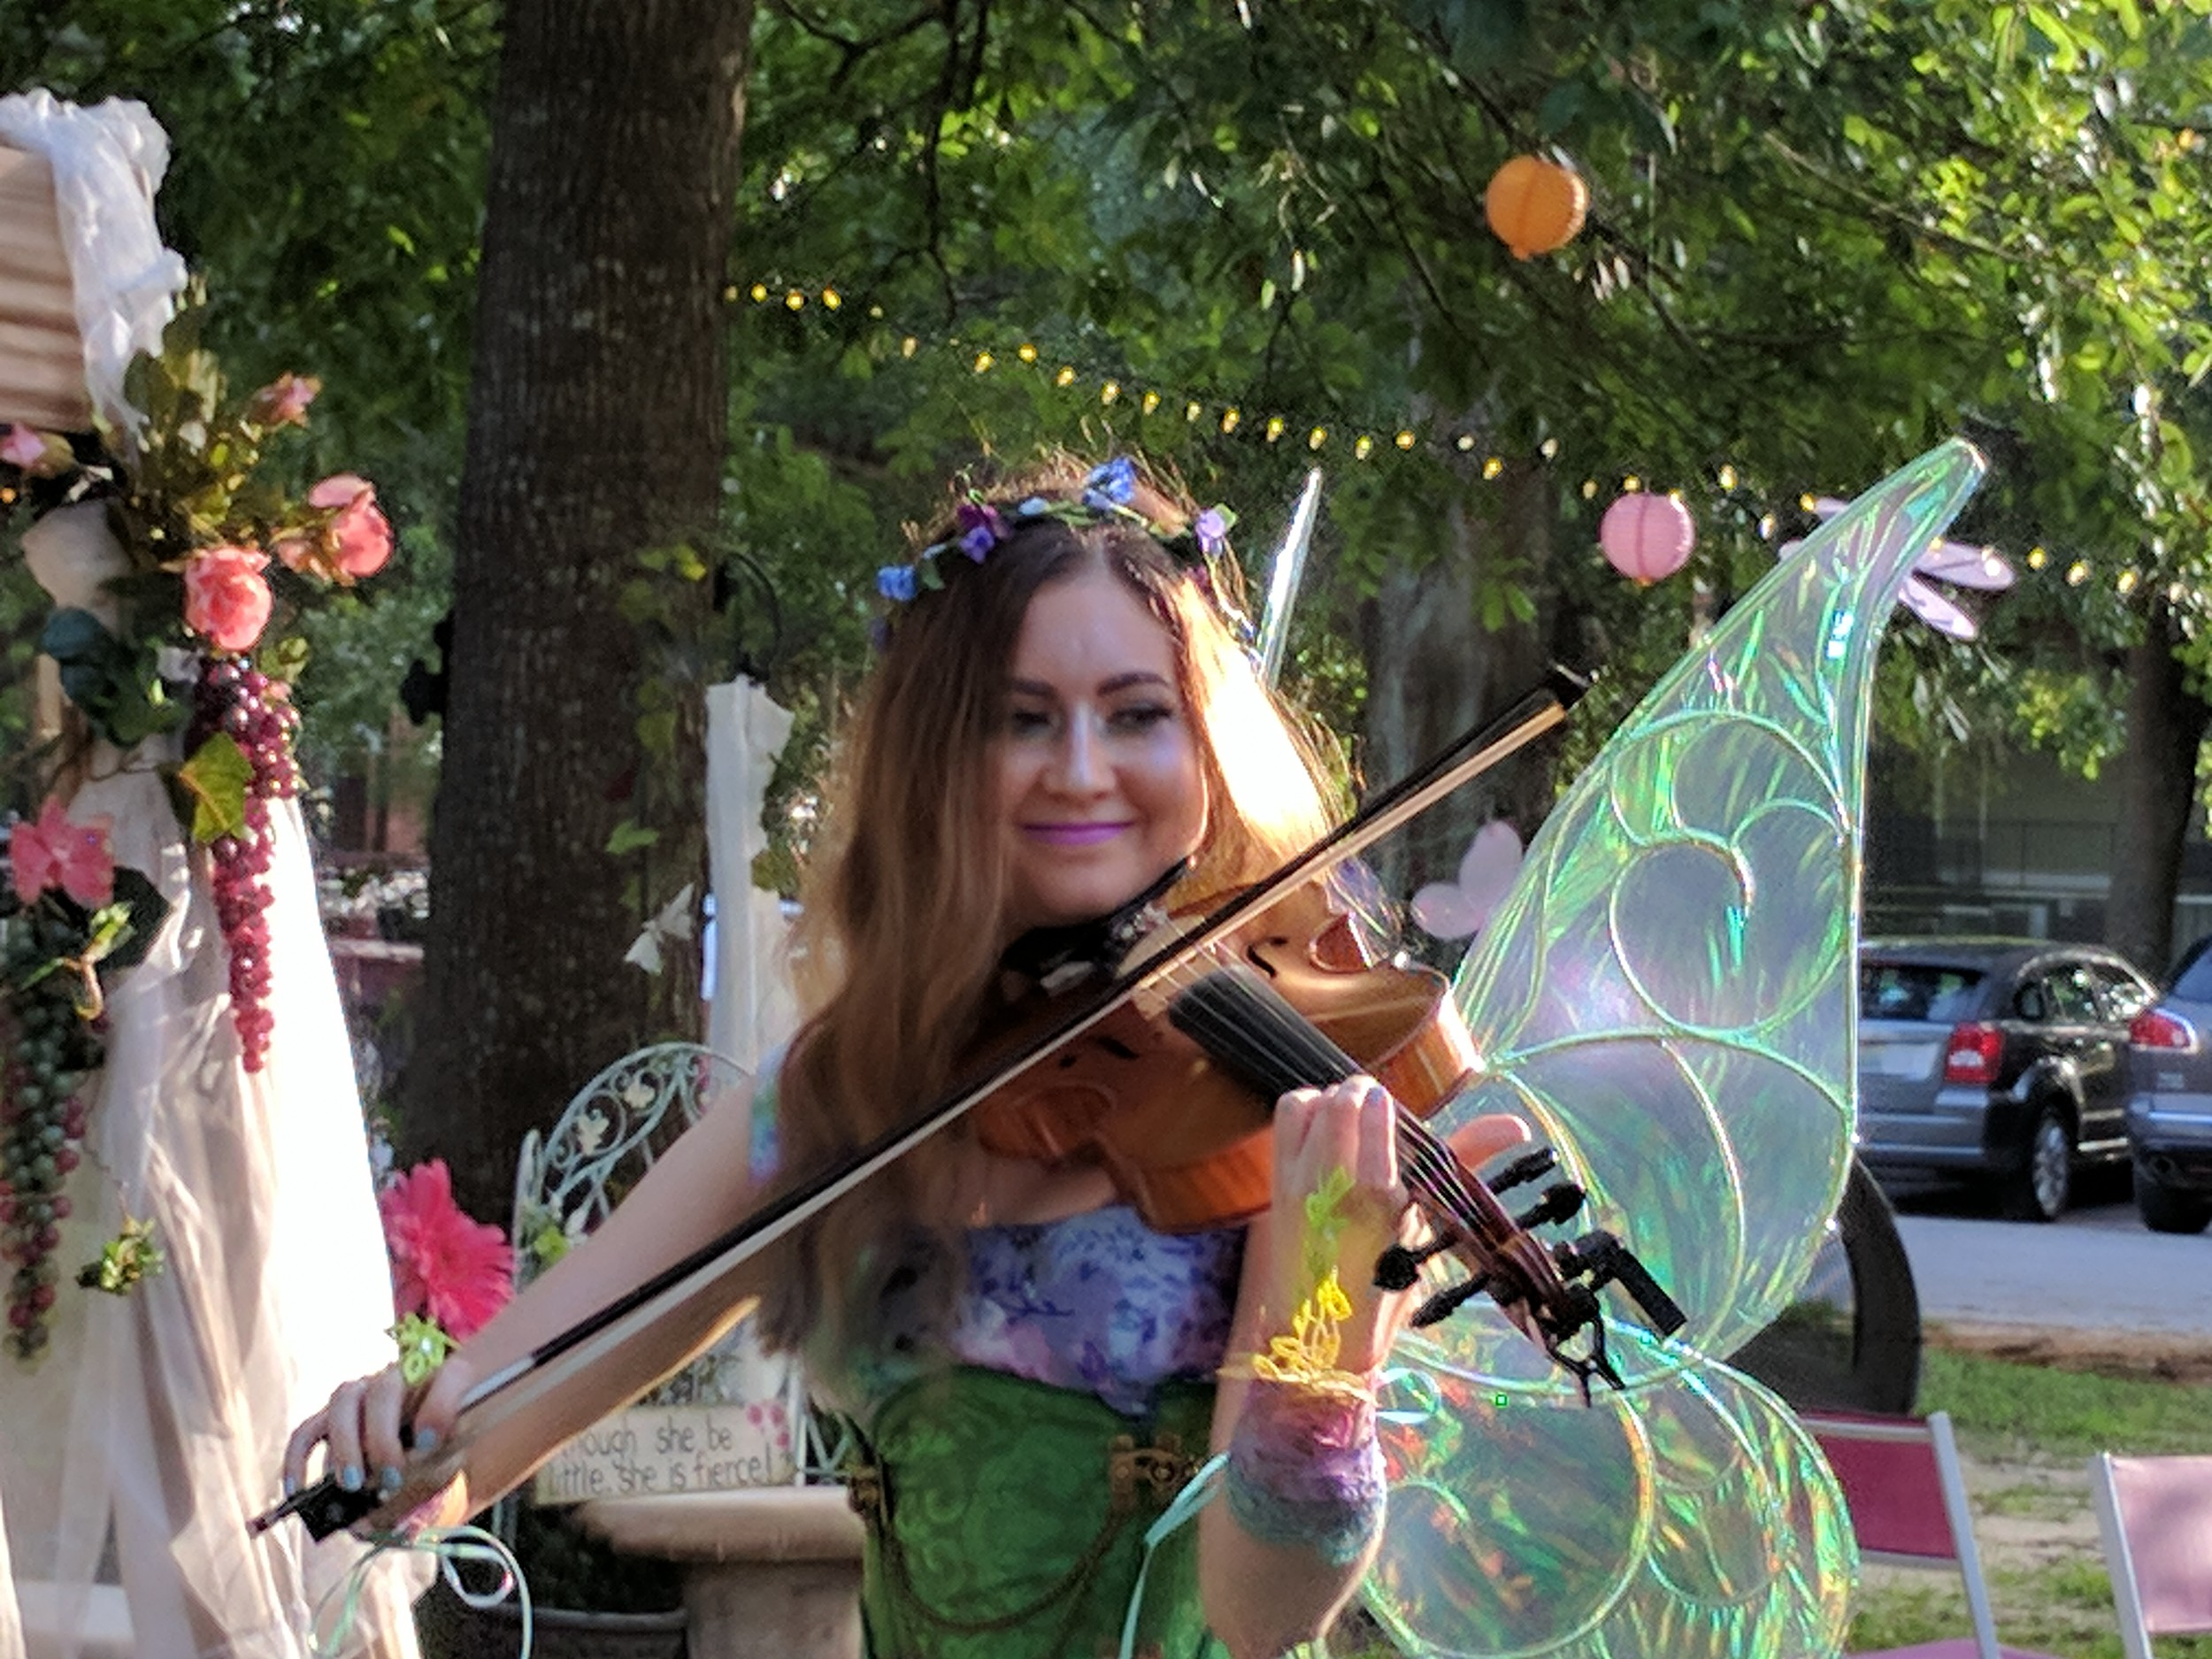 A fairy violinist enchanted the guests with her talent.